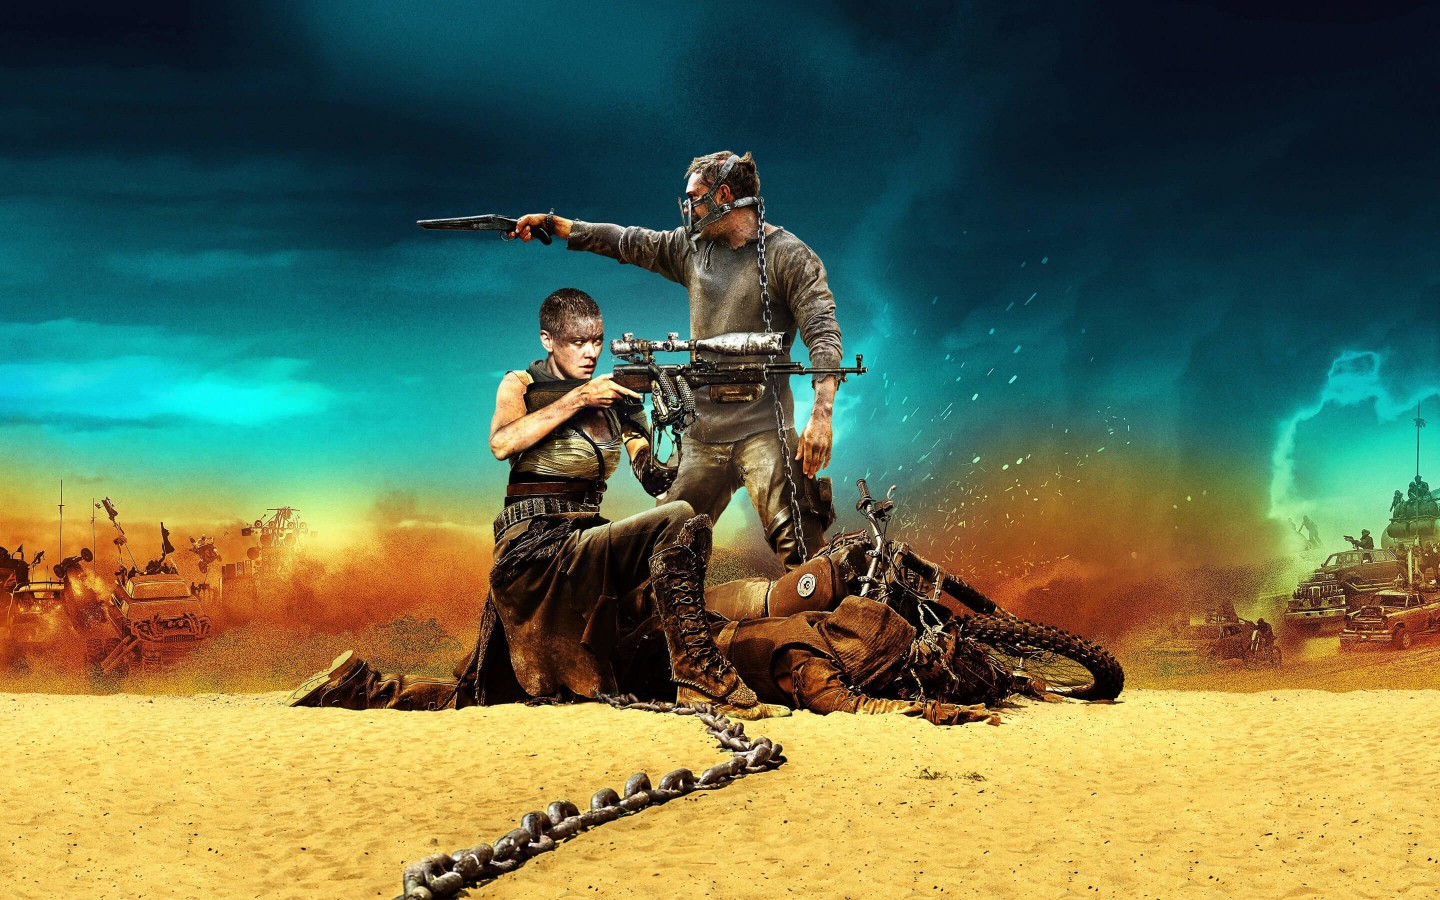 Mad Max: Fury Road Movie (2015) Wallpaper for Desktop 1440x900